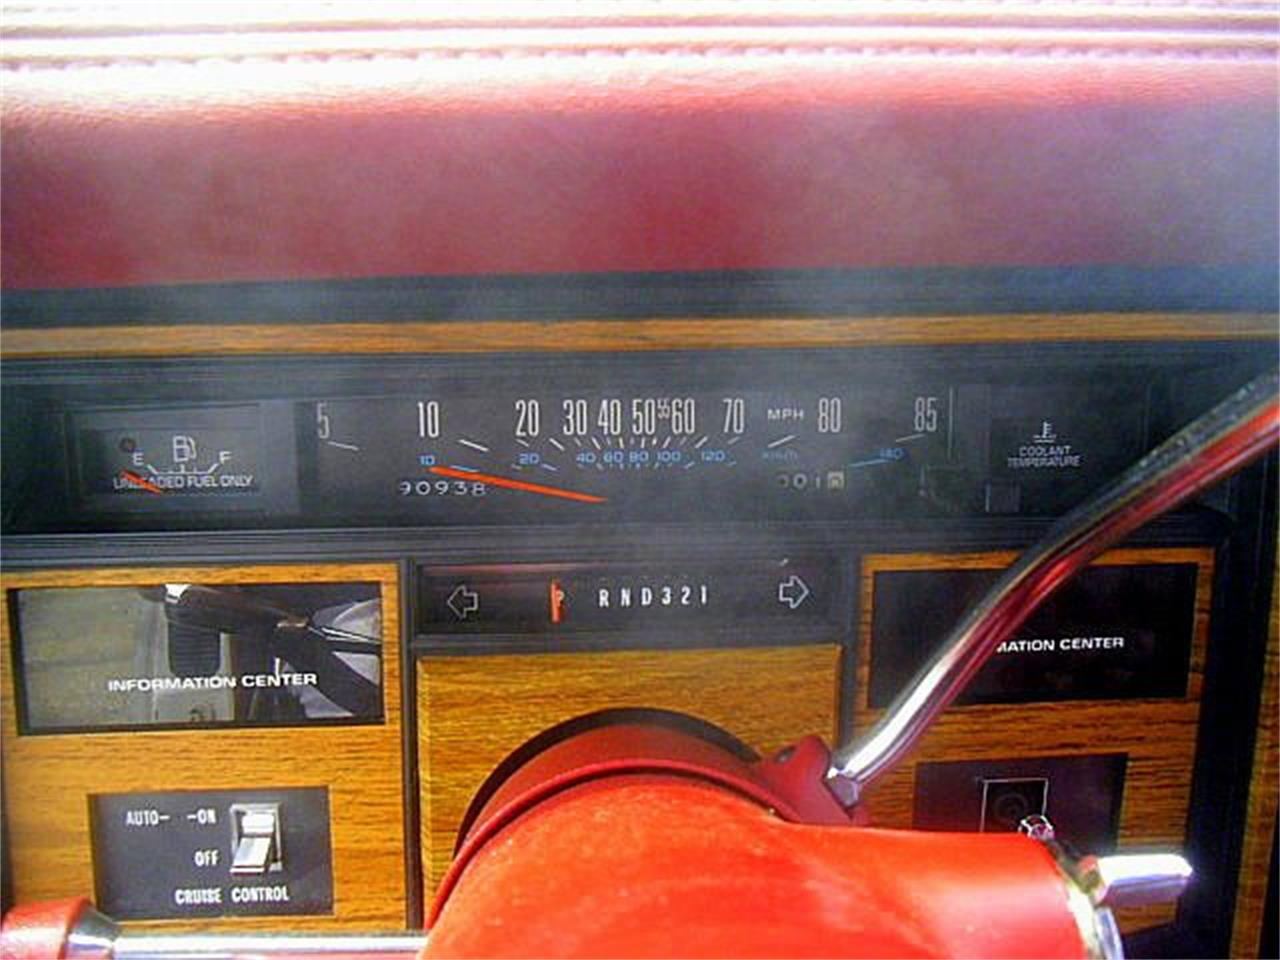 Large Picture of '84 Cadillac Eldorado Biarritz located in Stratford New Jersey - $10,900.00 - OCDO